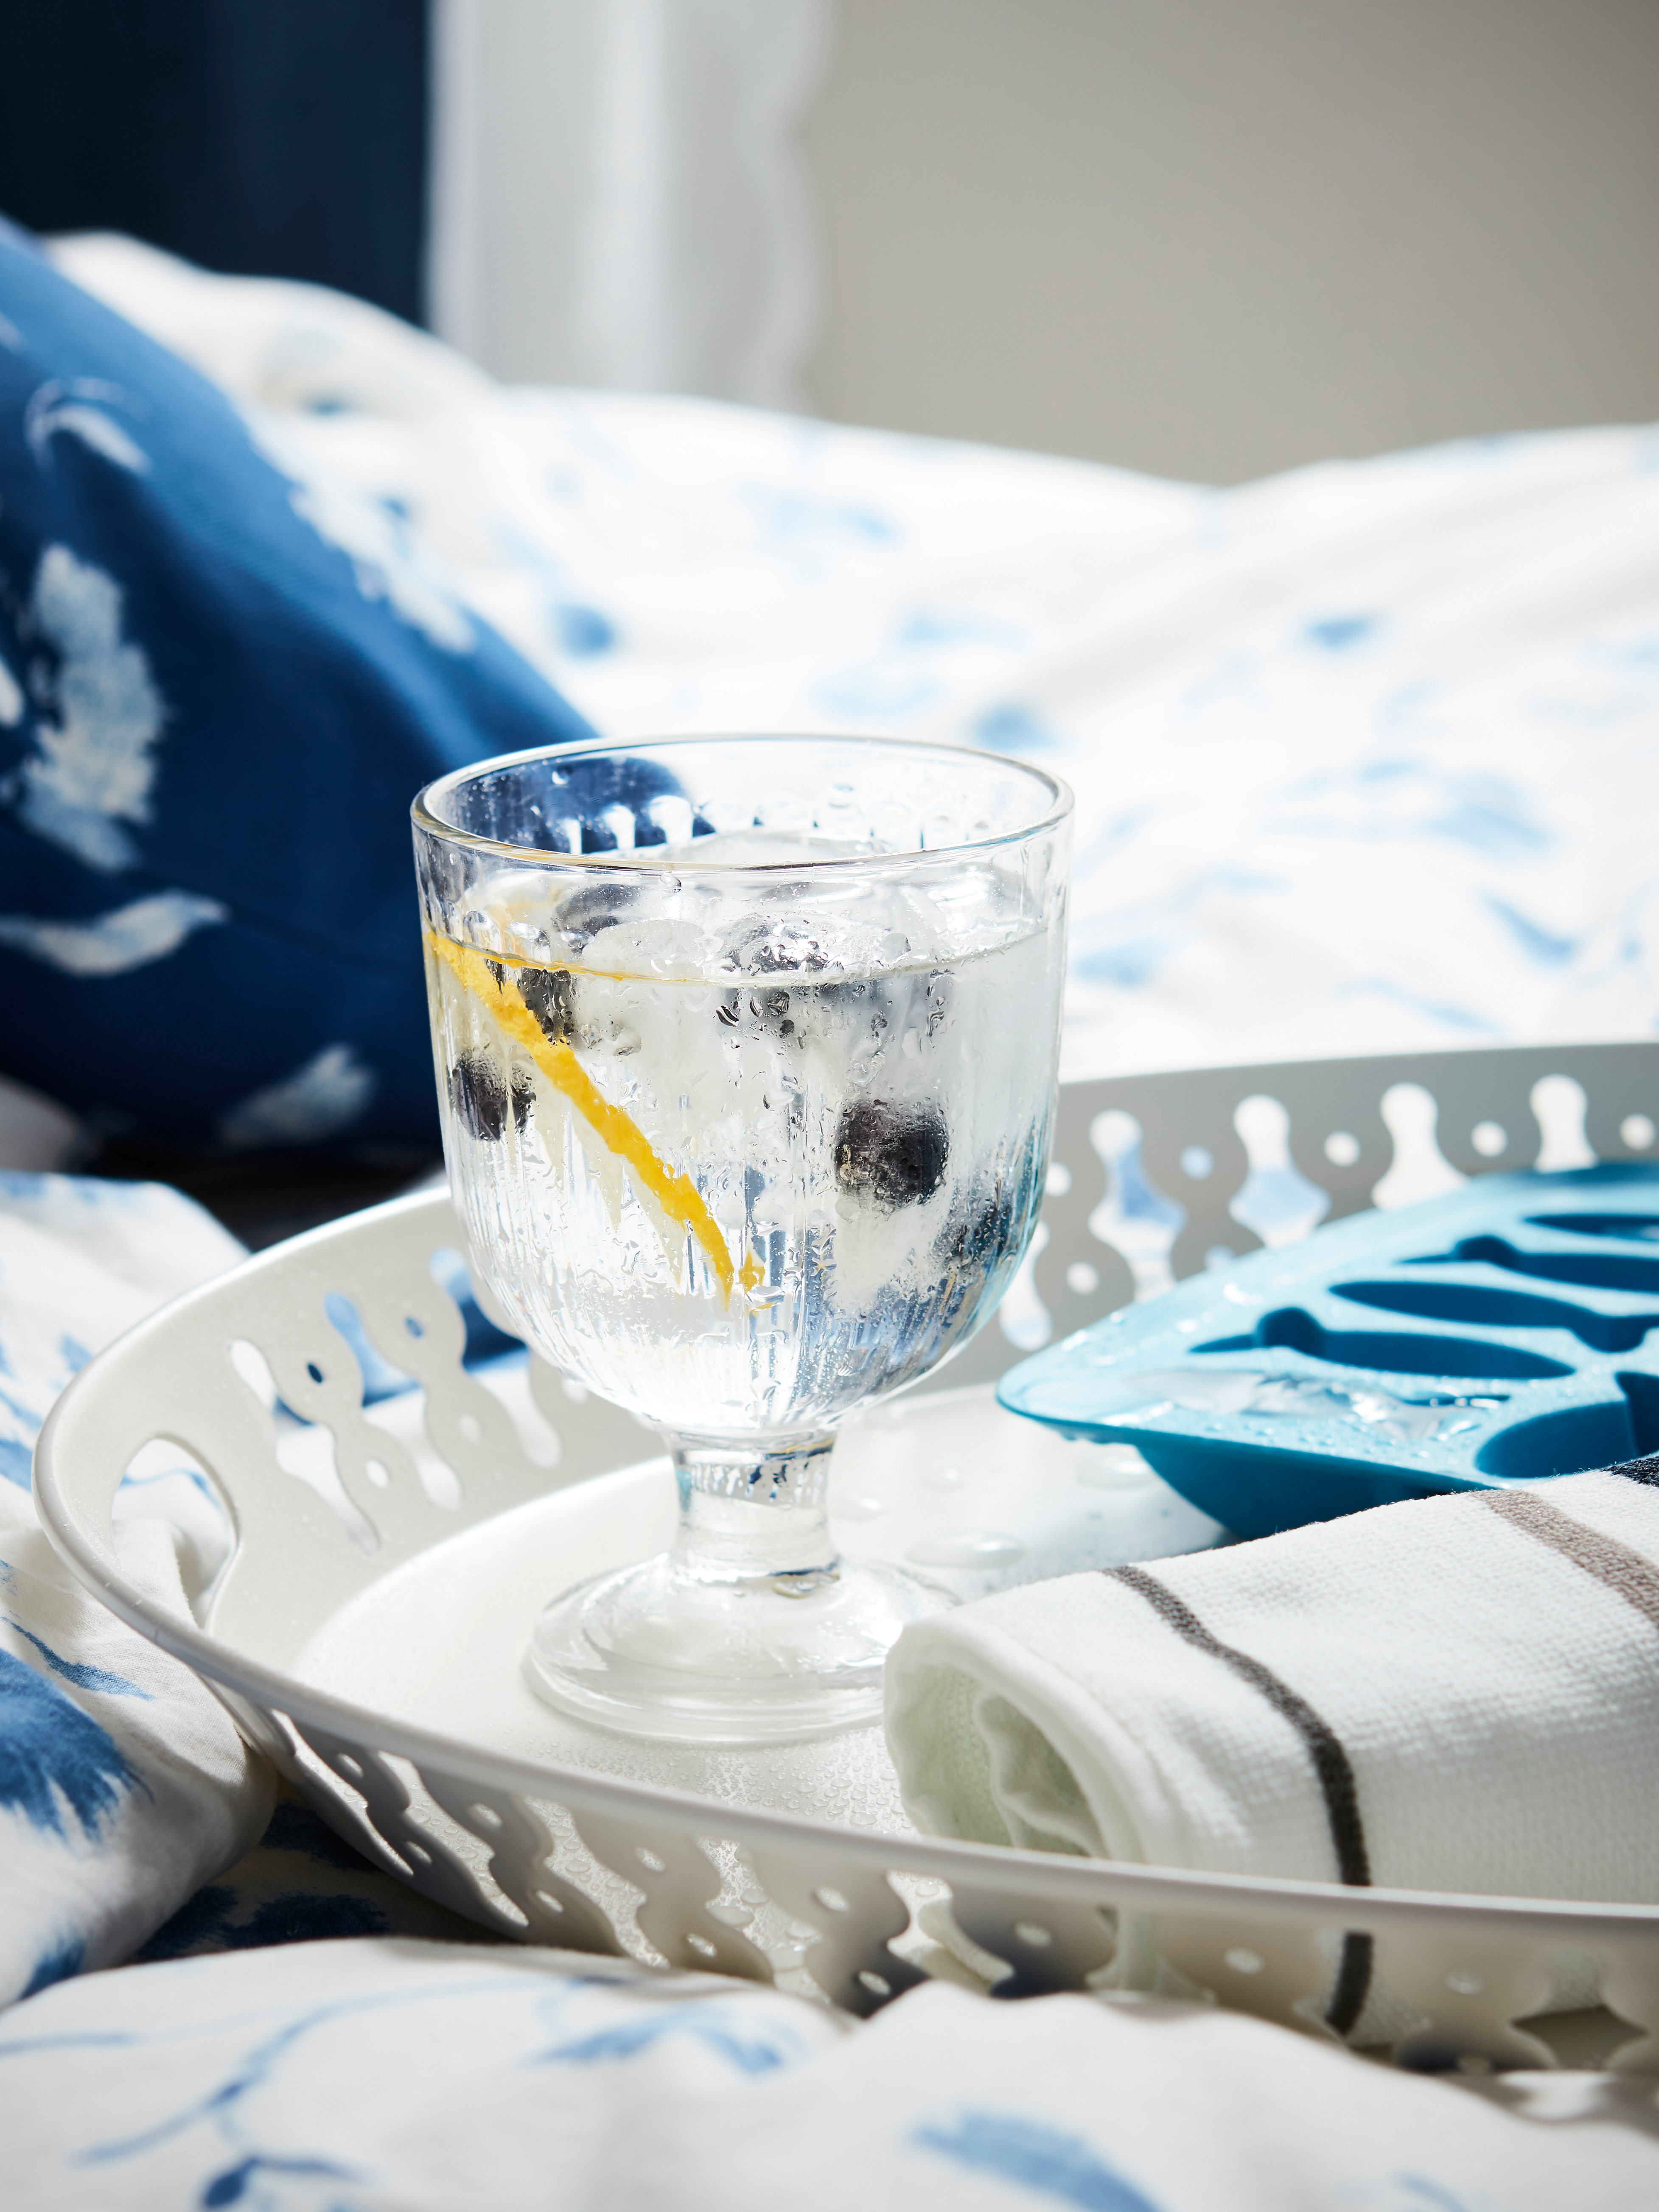 A white ROMANTISK tray with glass goblet and an ice cube tray on a bed with blue and white quilt cover and pillowcase.